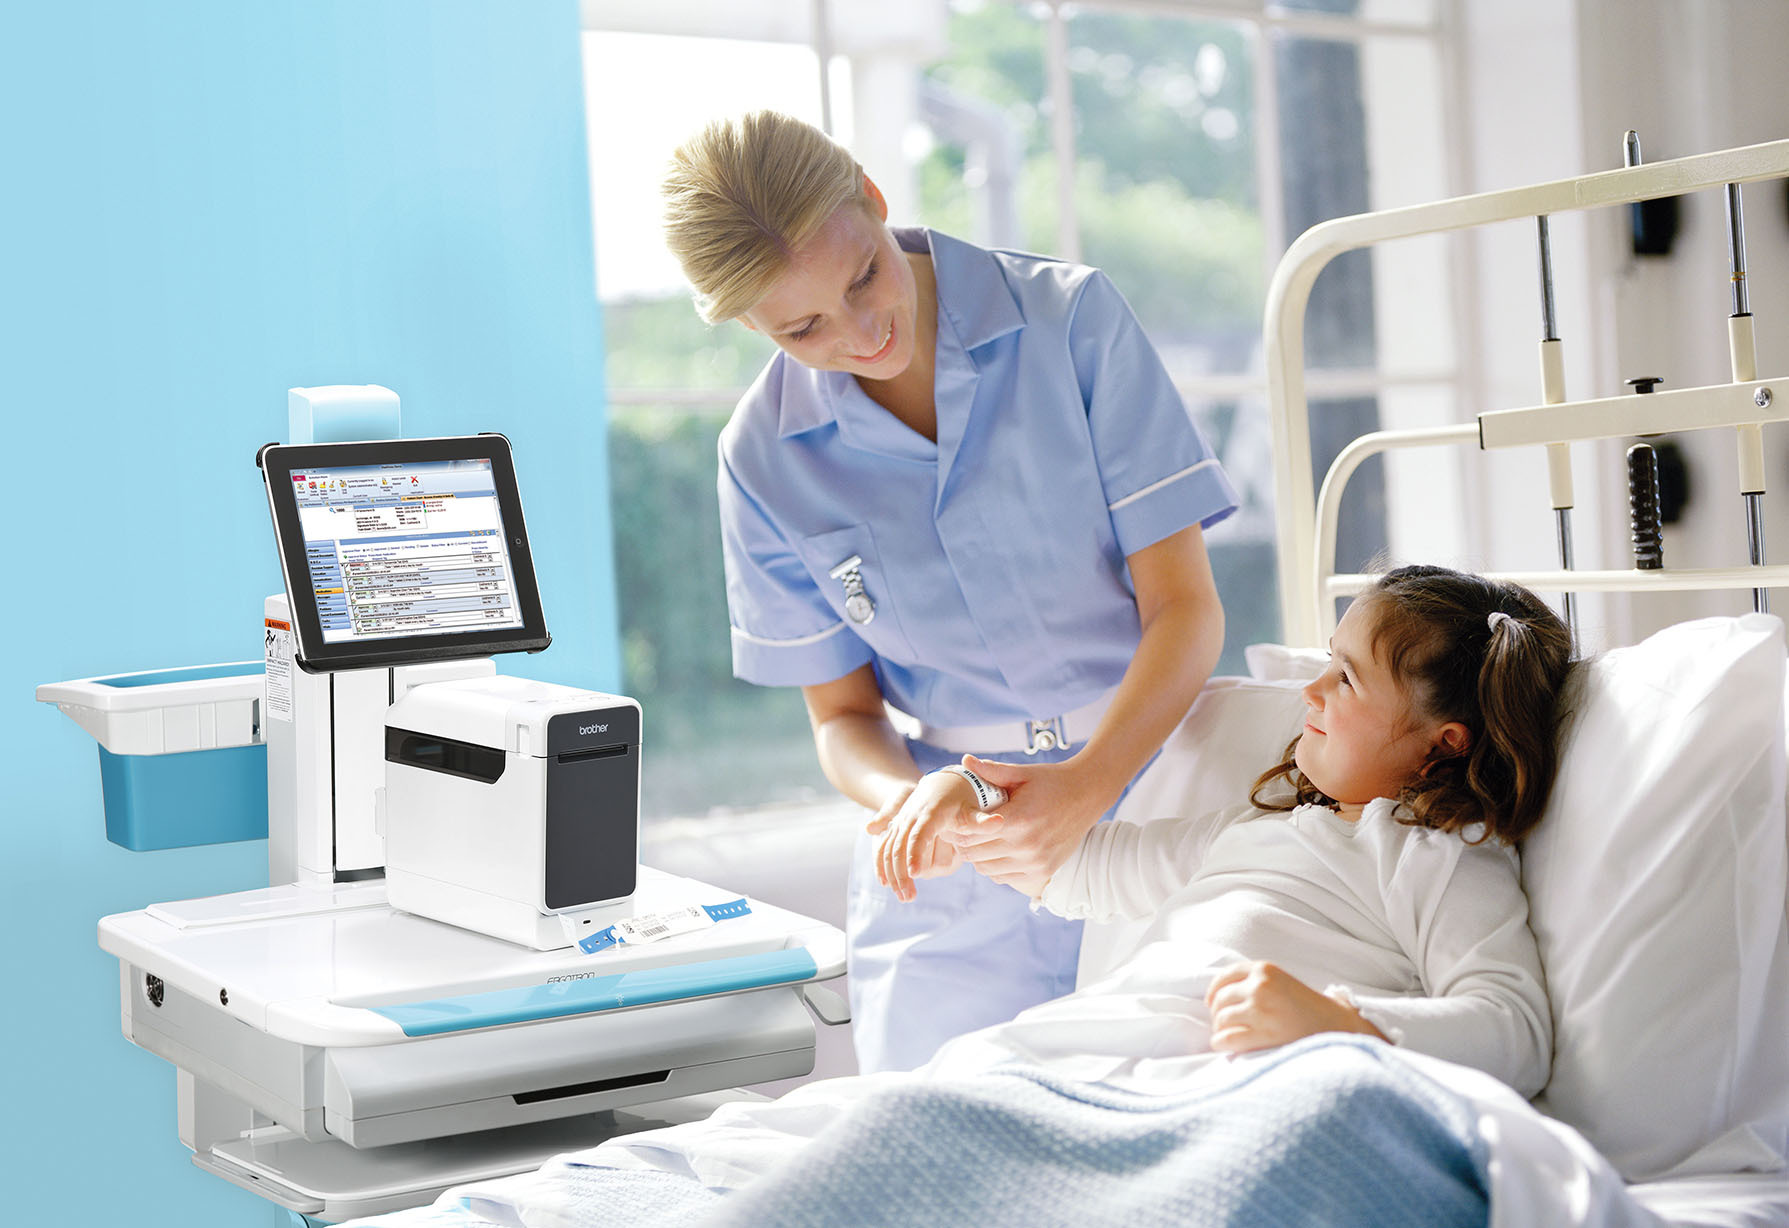 Brother mobile solutions to showcase its cerner certified patient full size xflitez Images